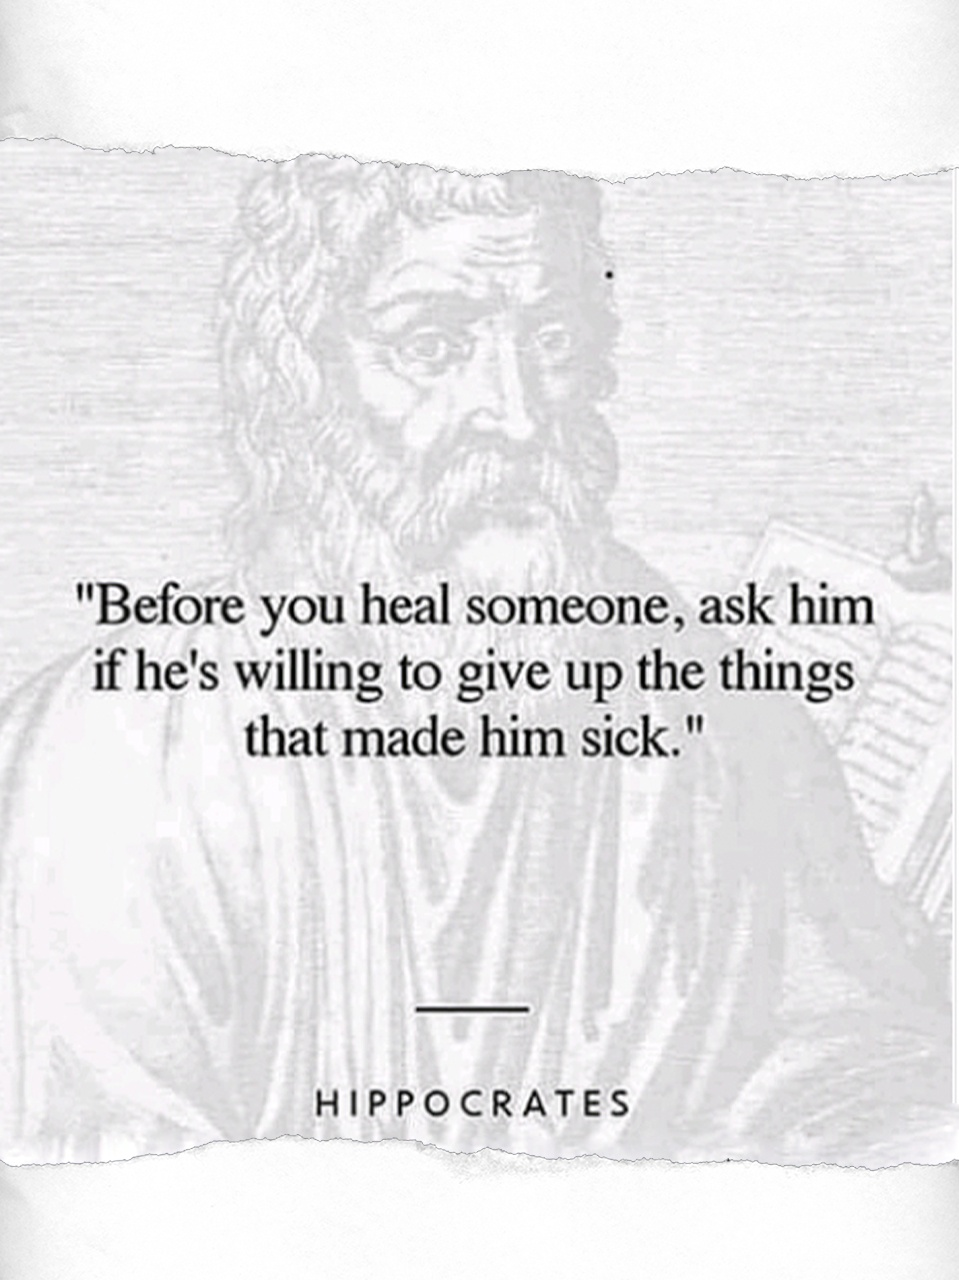 GREEN-CAT-HEALTH-HIPPOCRATES-HEALING-QUOTE-1